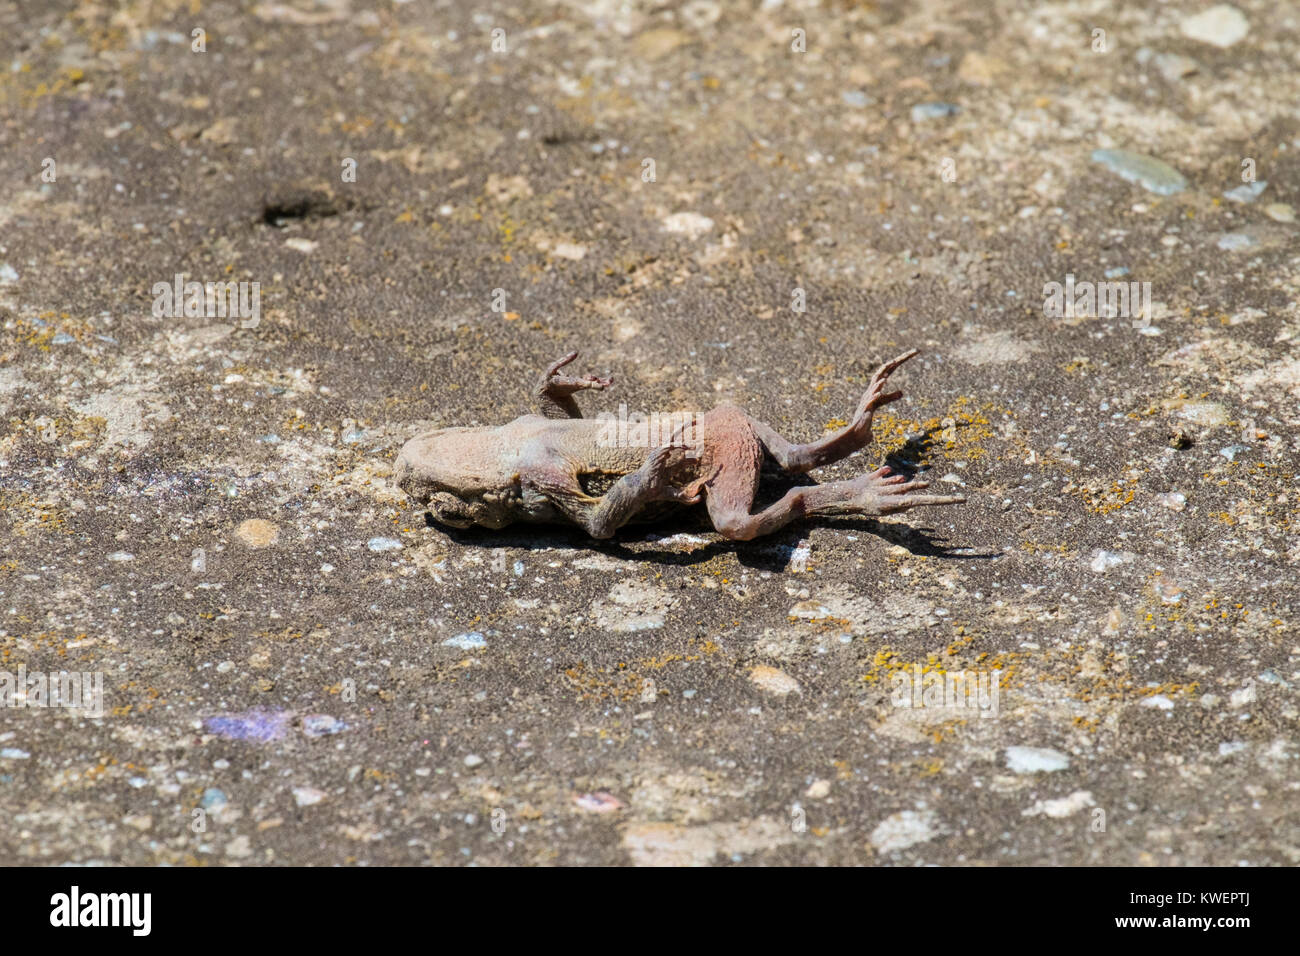 Dead Common toad lies on an old concrete surface (Bufo bufo) - Stock Image